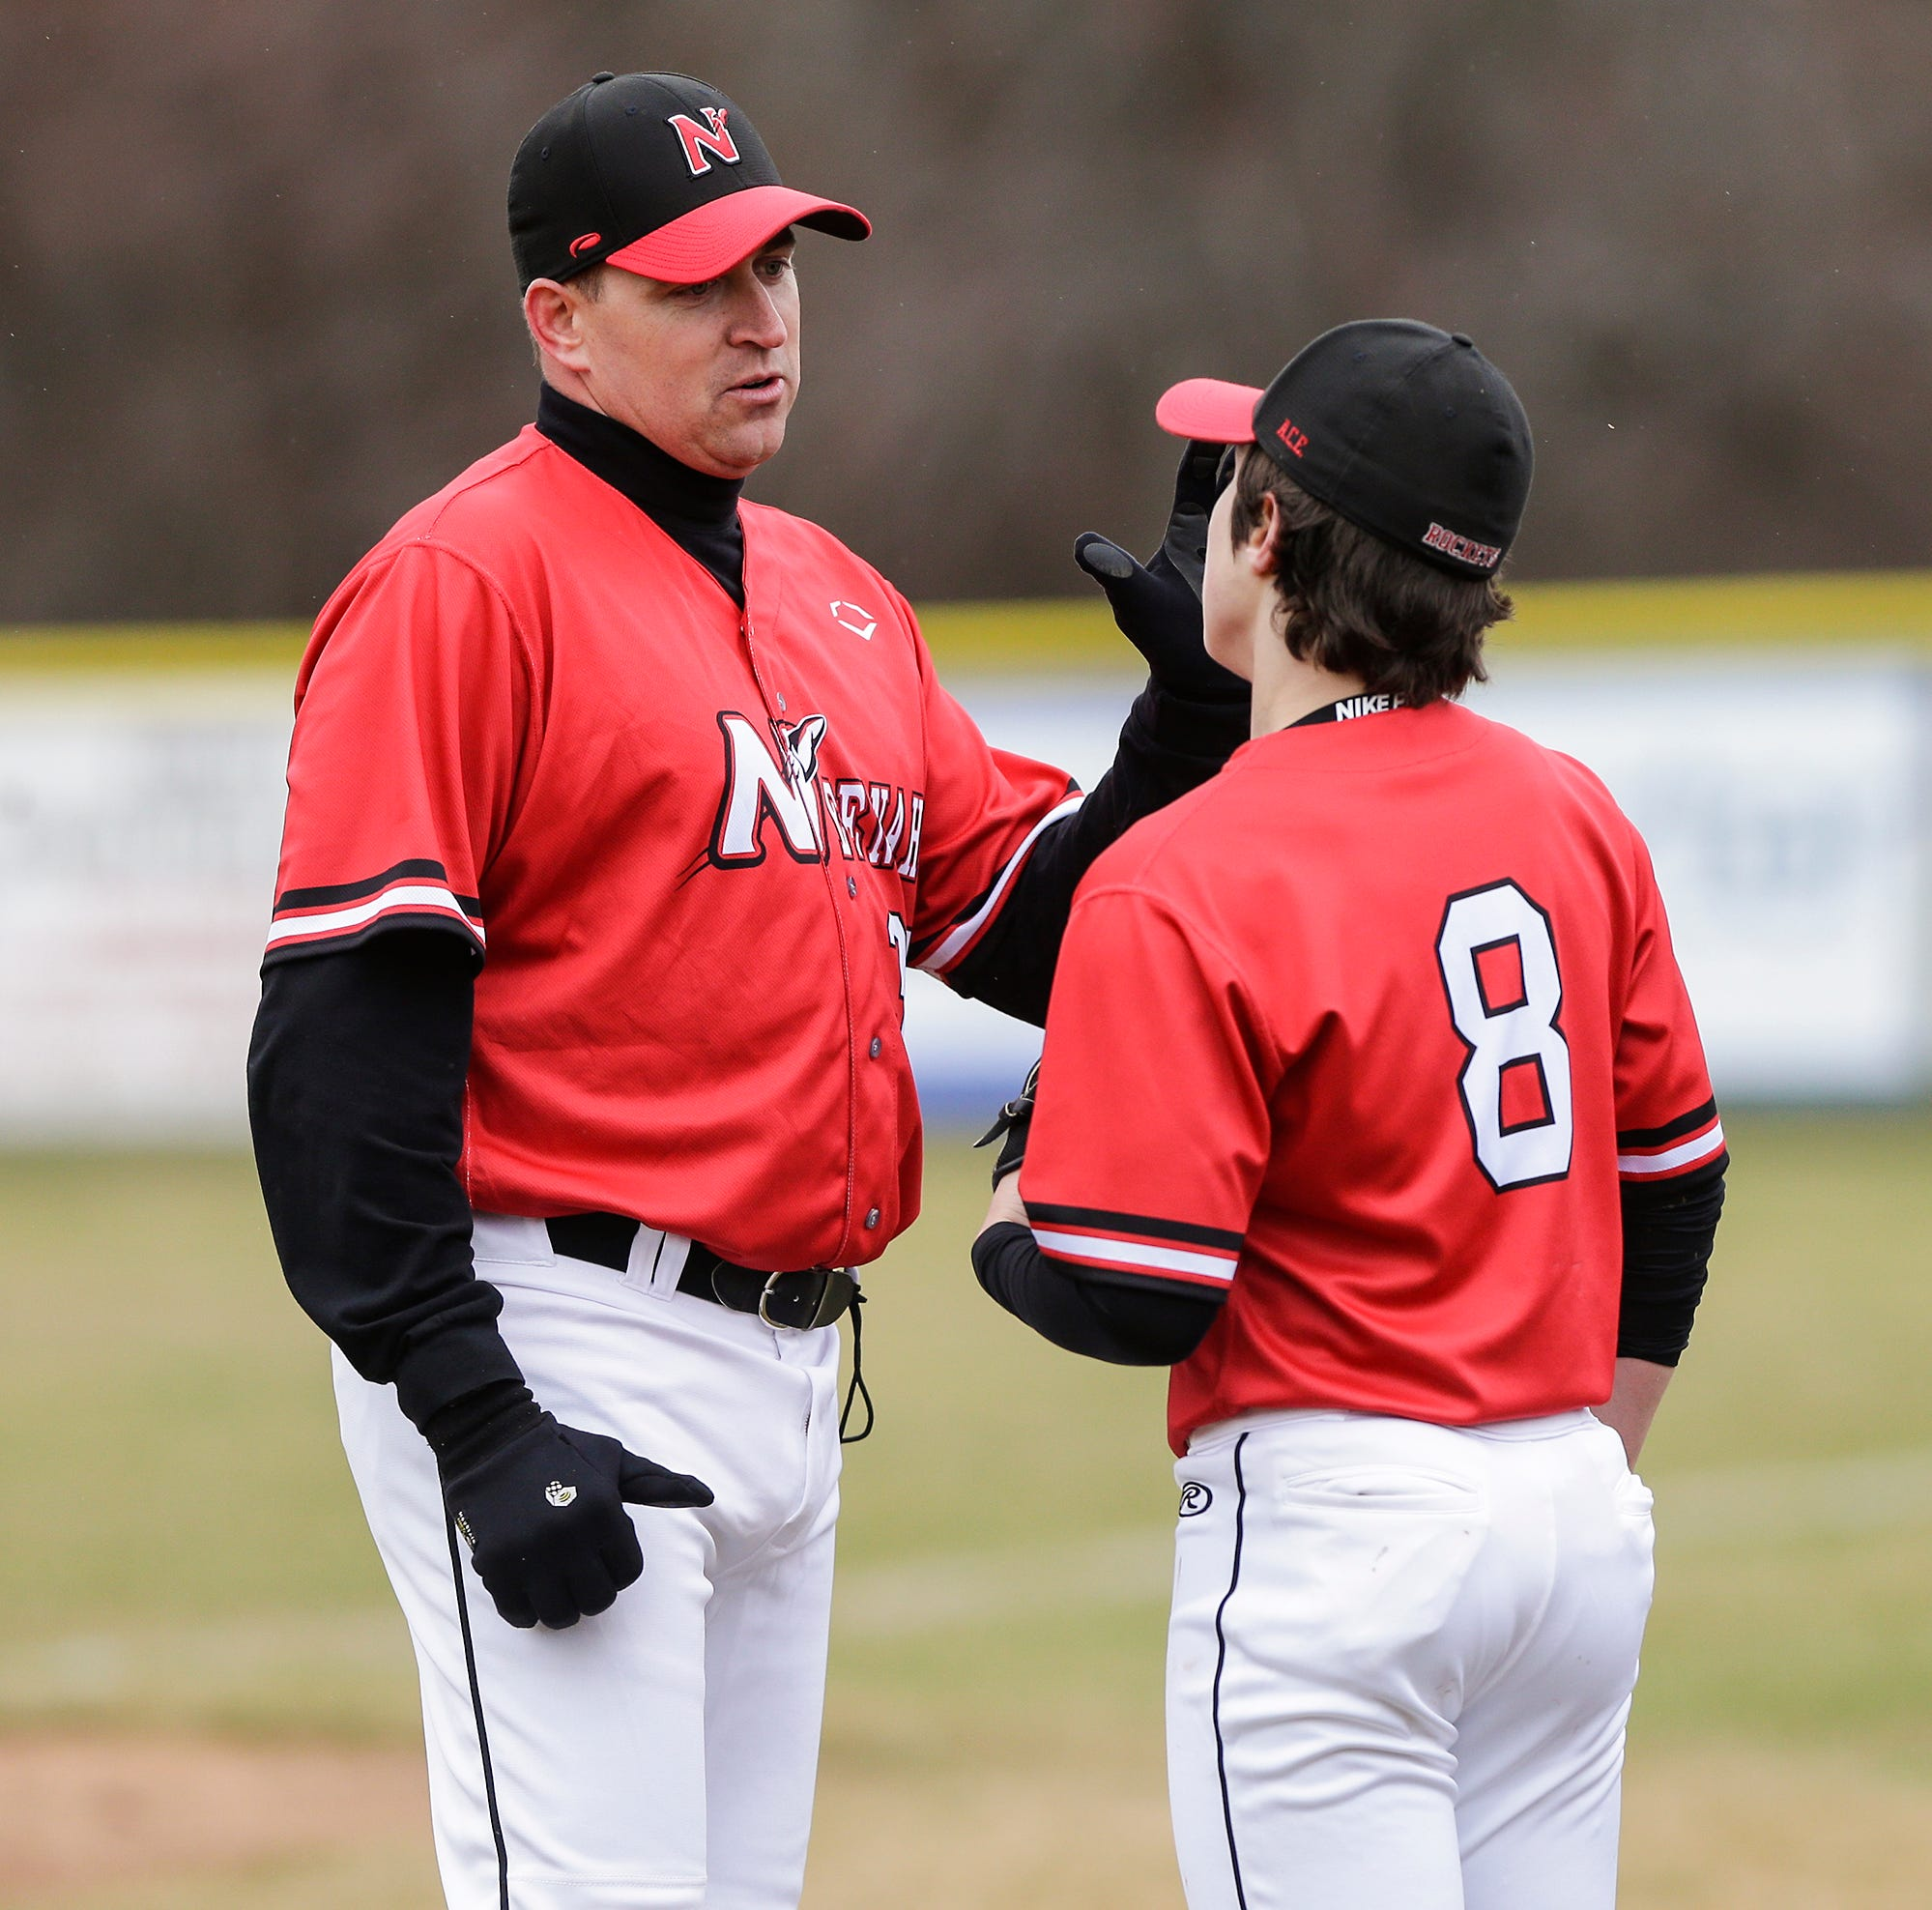 Former big leaguers Taschner, Harikkala pass down baseball knowledge to high school teams